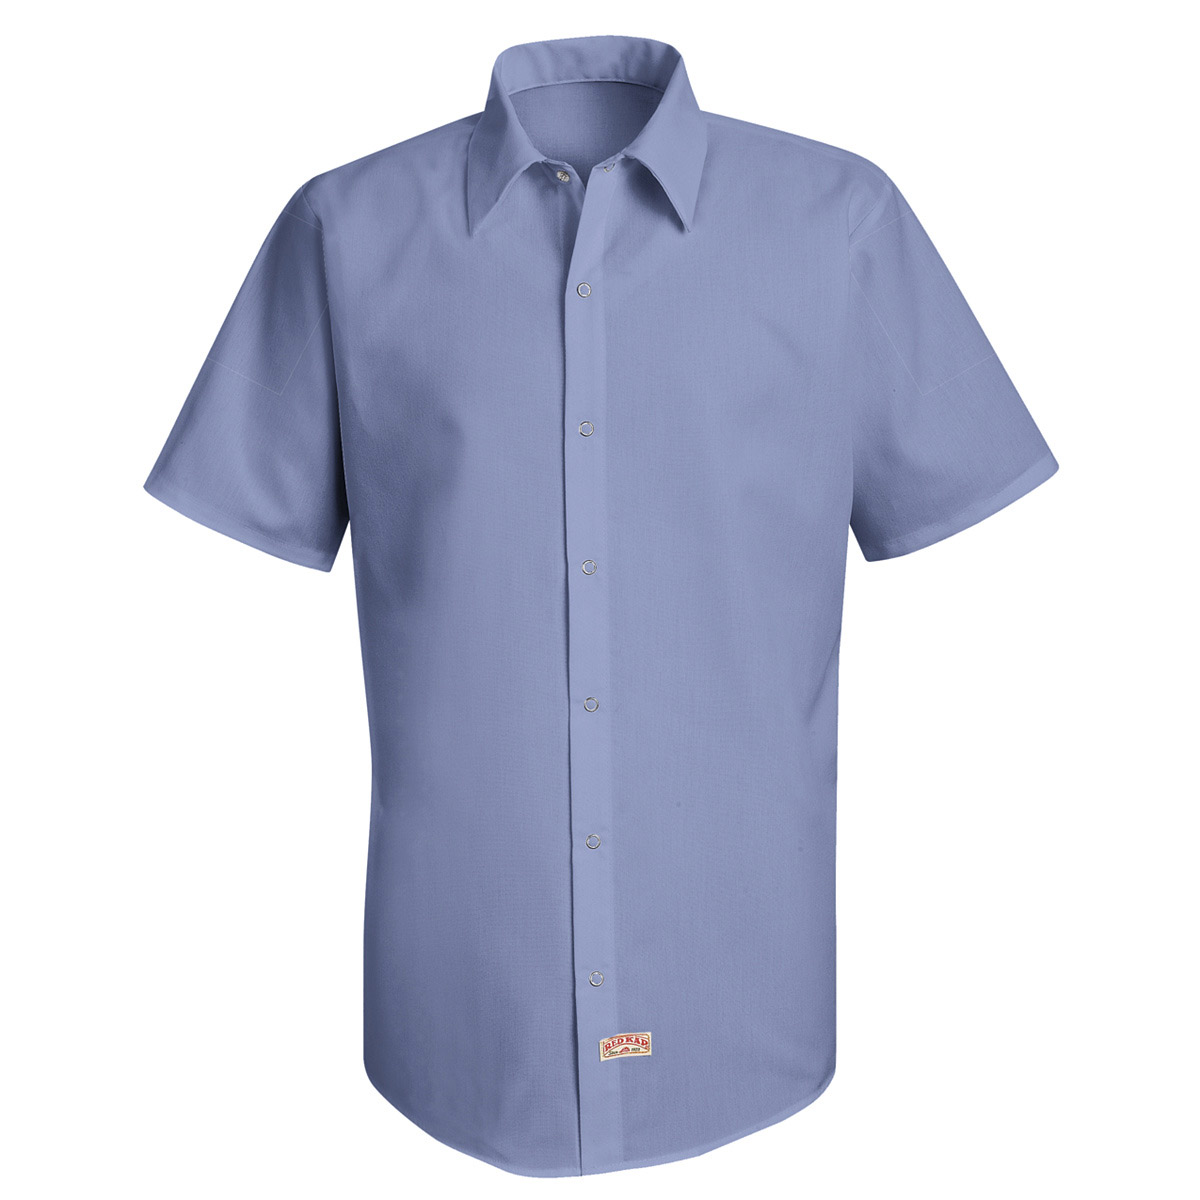 Men's Specialized Pocketless Polyester Work Shirt